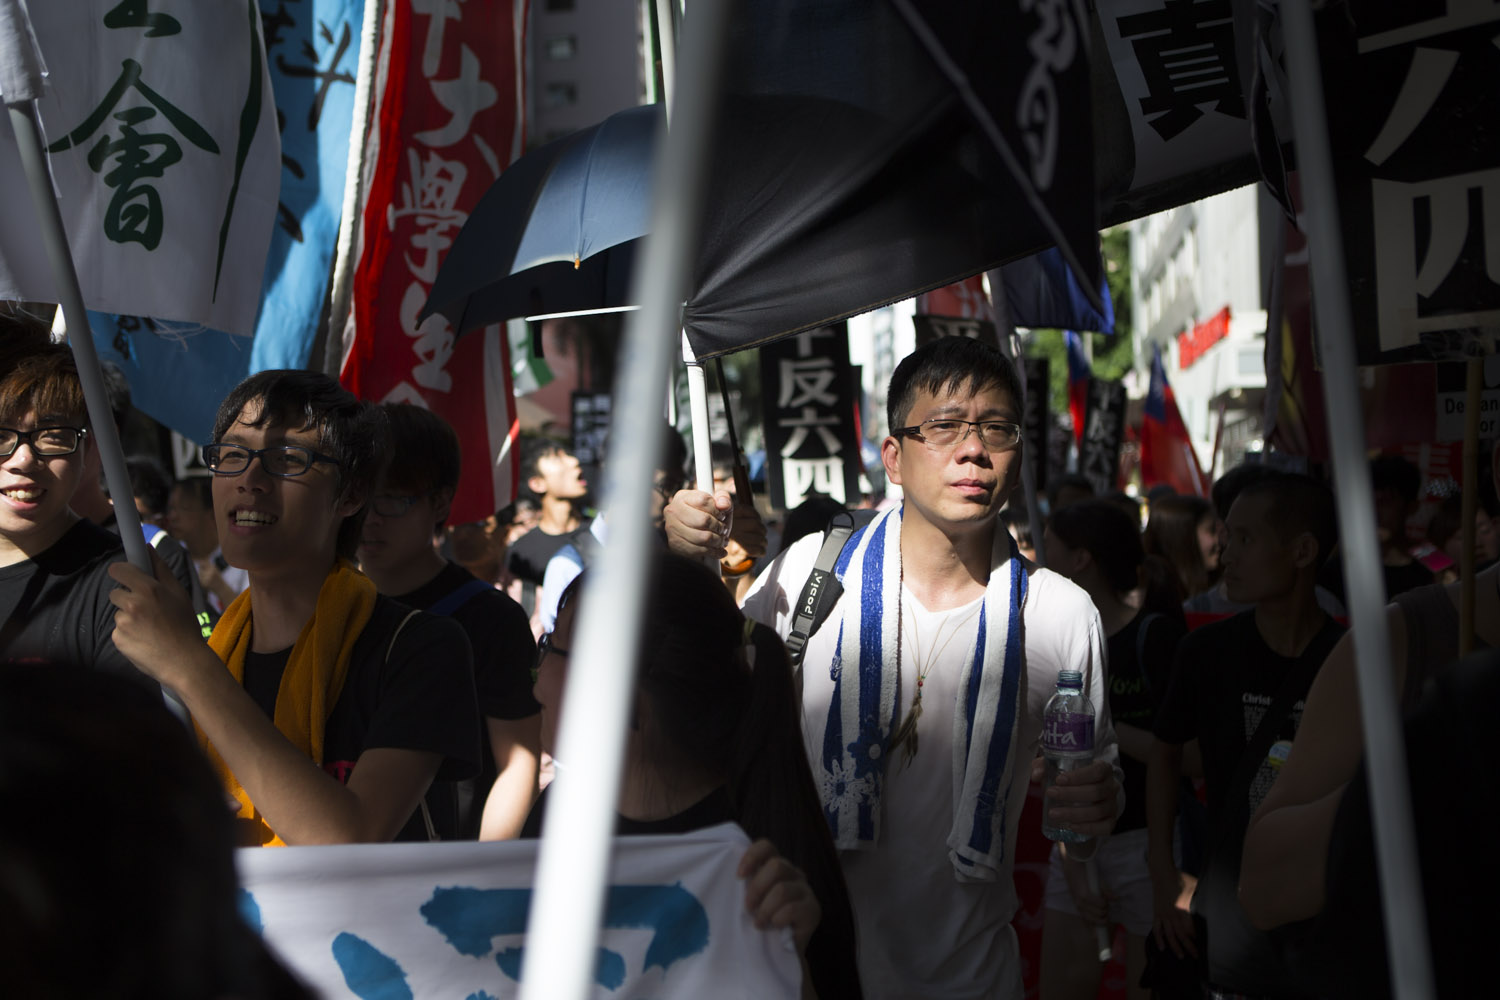 Kenneth Lam carries a sign that reads:  The truth cannot be distorted  during a pro-democracy march in Hong Kong on June 1, 2014. Lam witnessed the military crackdown in Tiananmen Square in 1989.